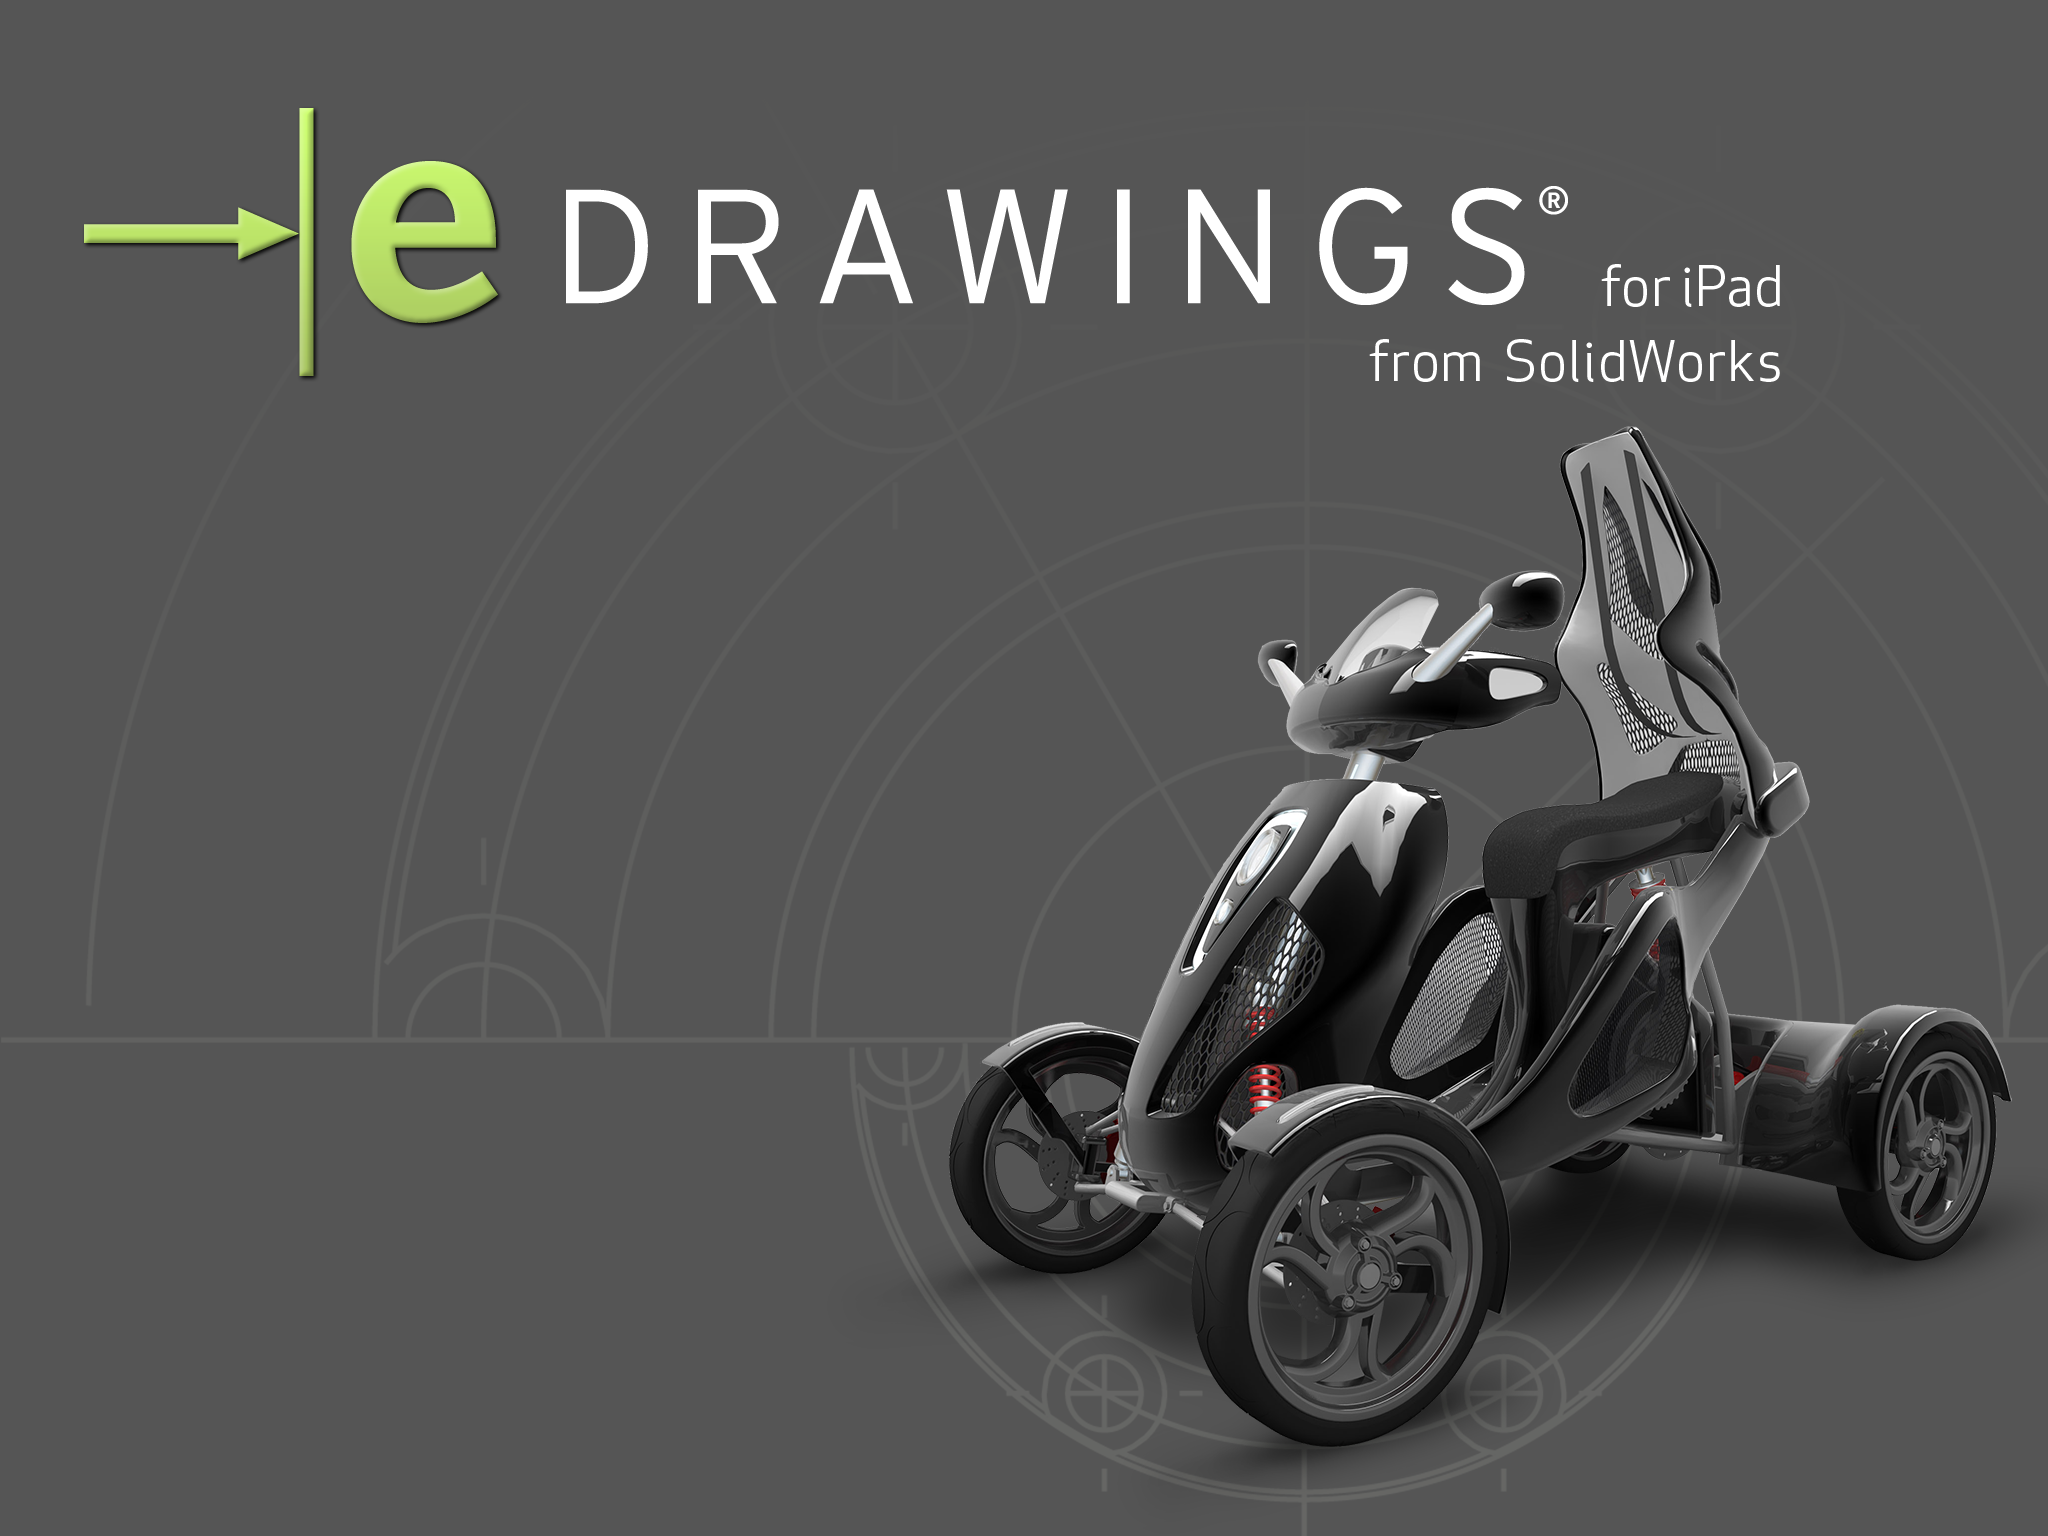 eDrawings for iPad: new features are available now